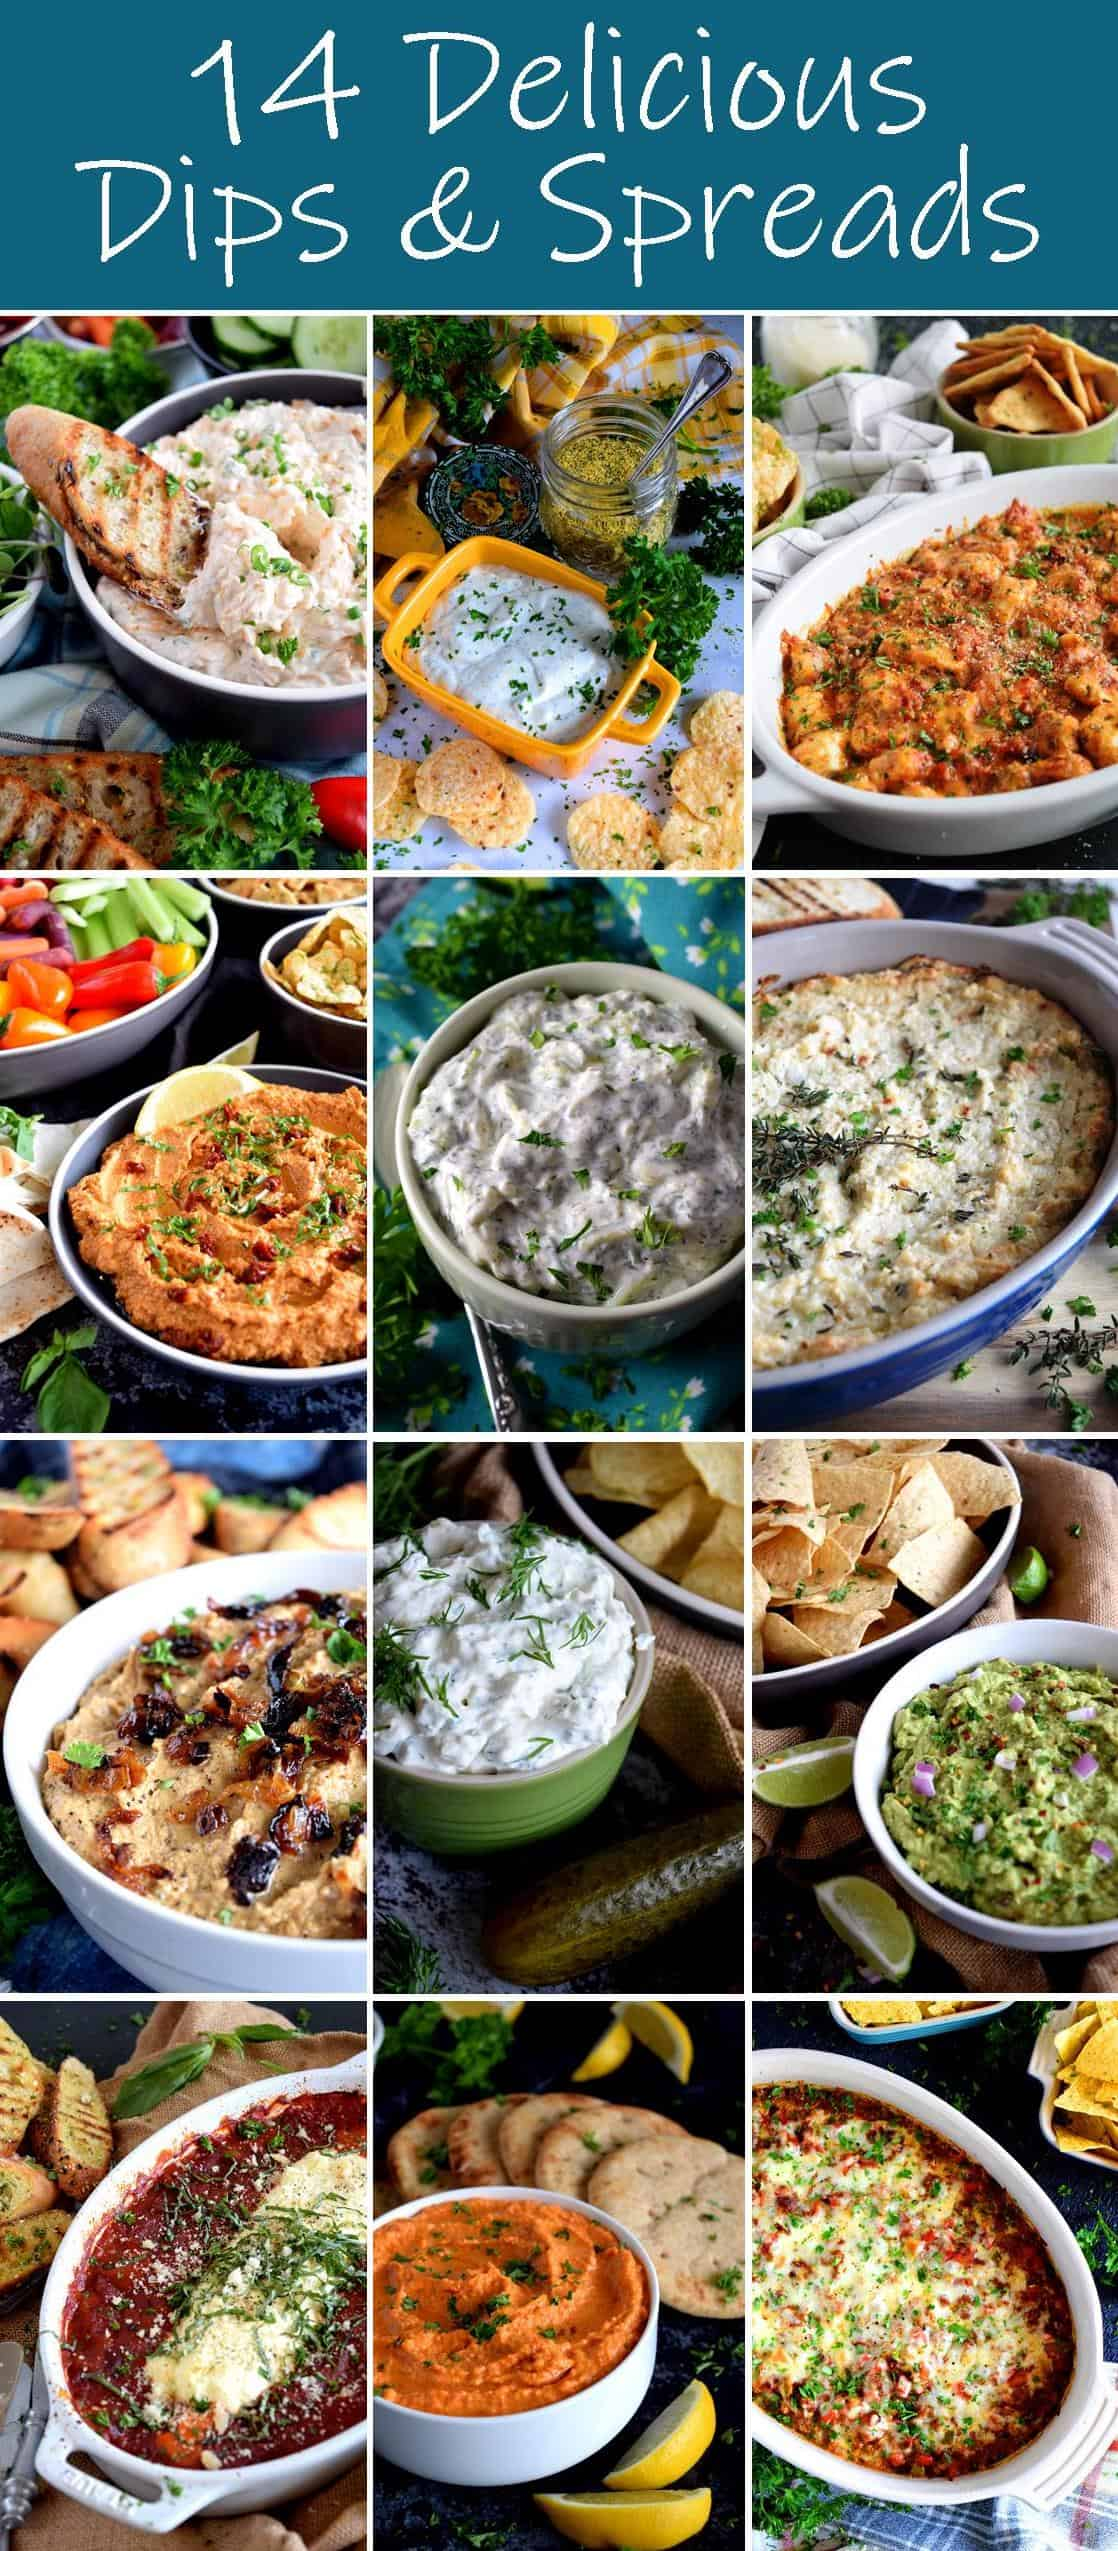 14 Delicious Dips and Spreads - Lord Byron's Kitchen